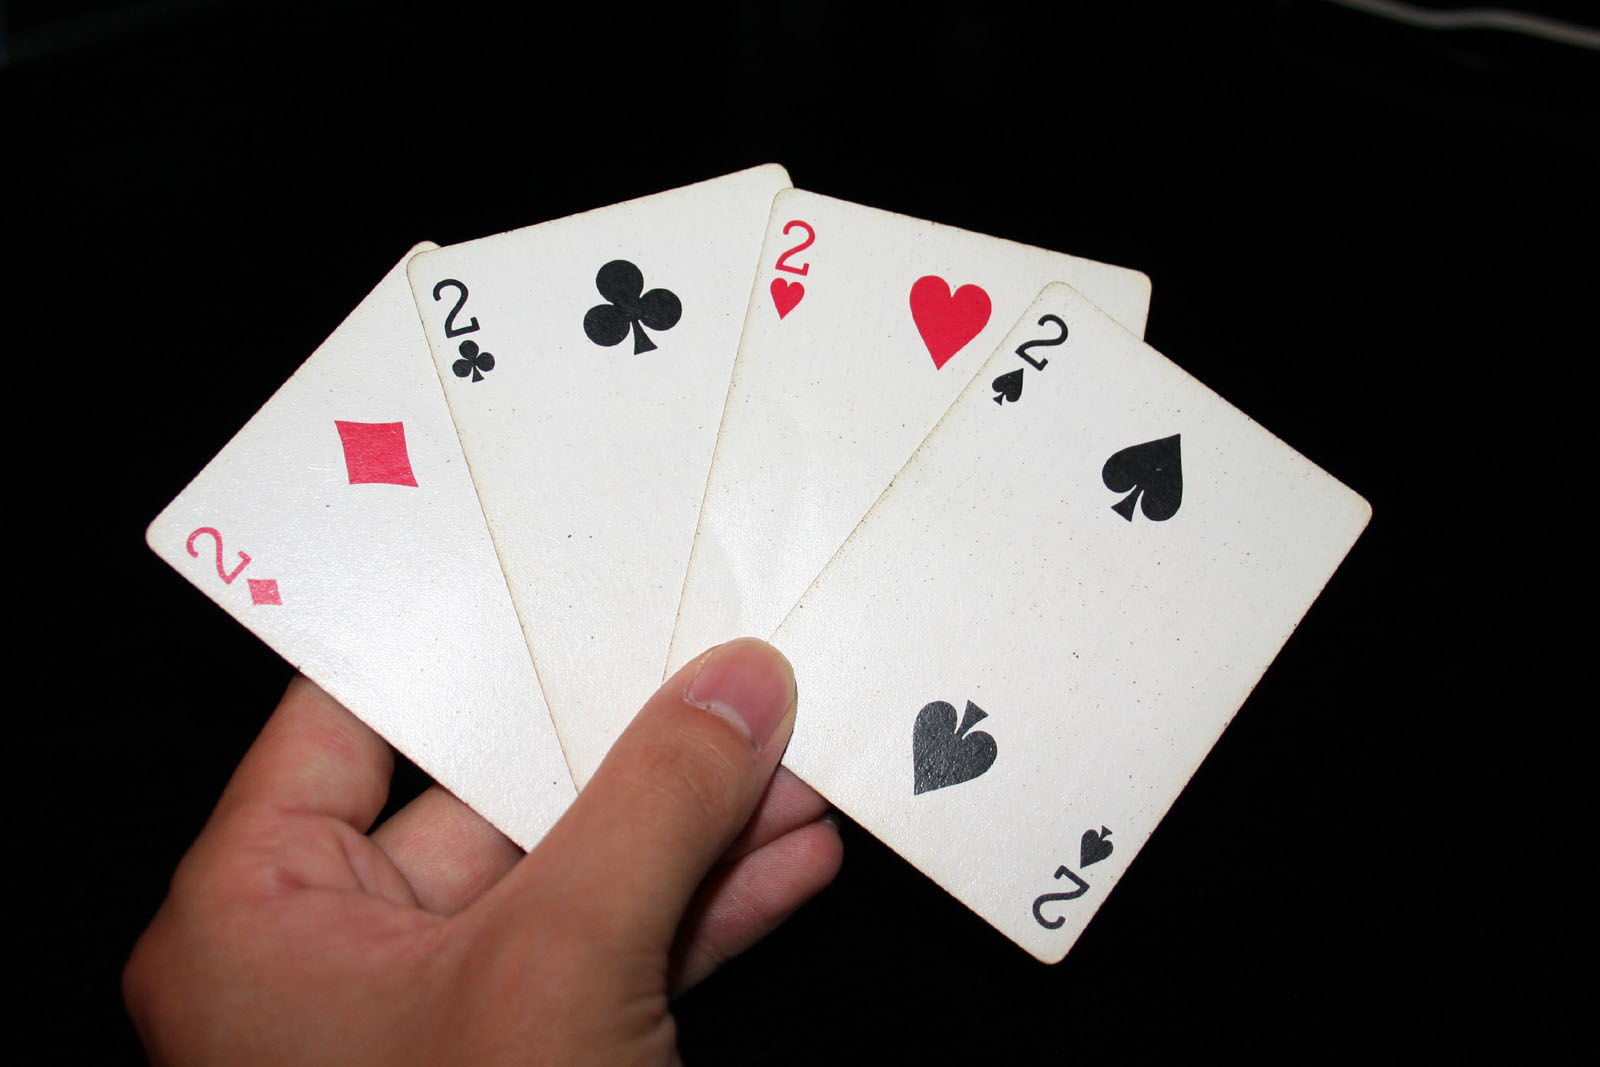 Description 2 playing cards.jpg